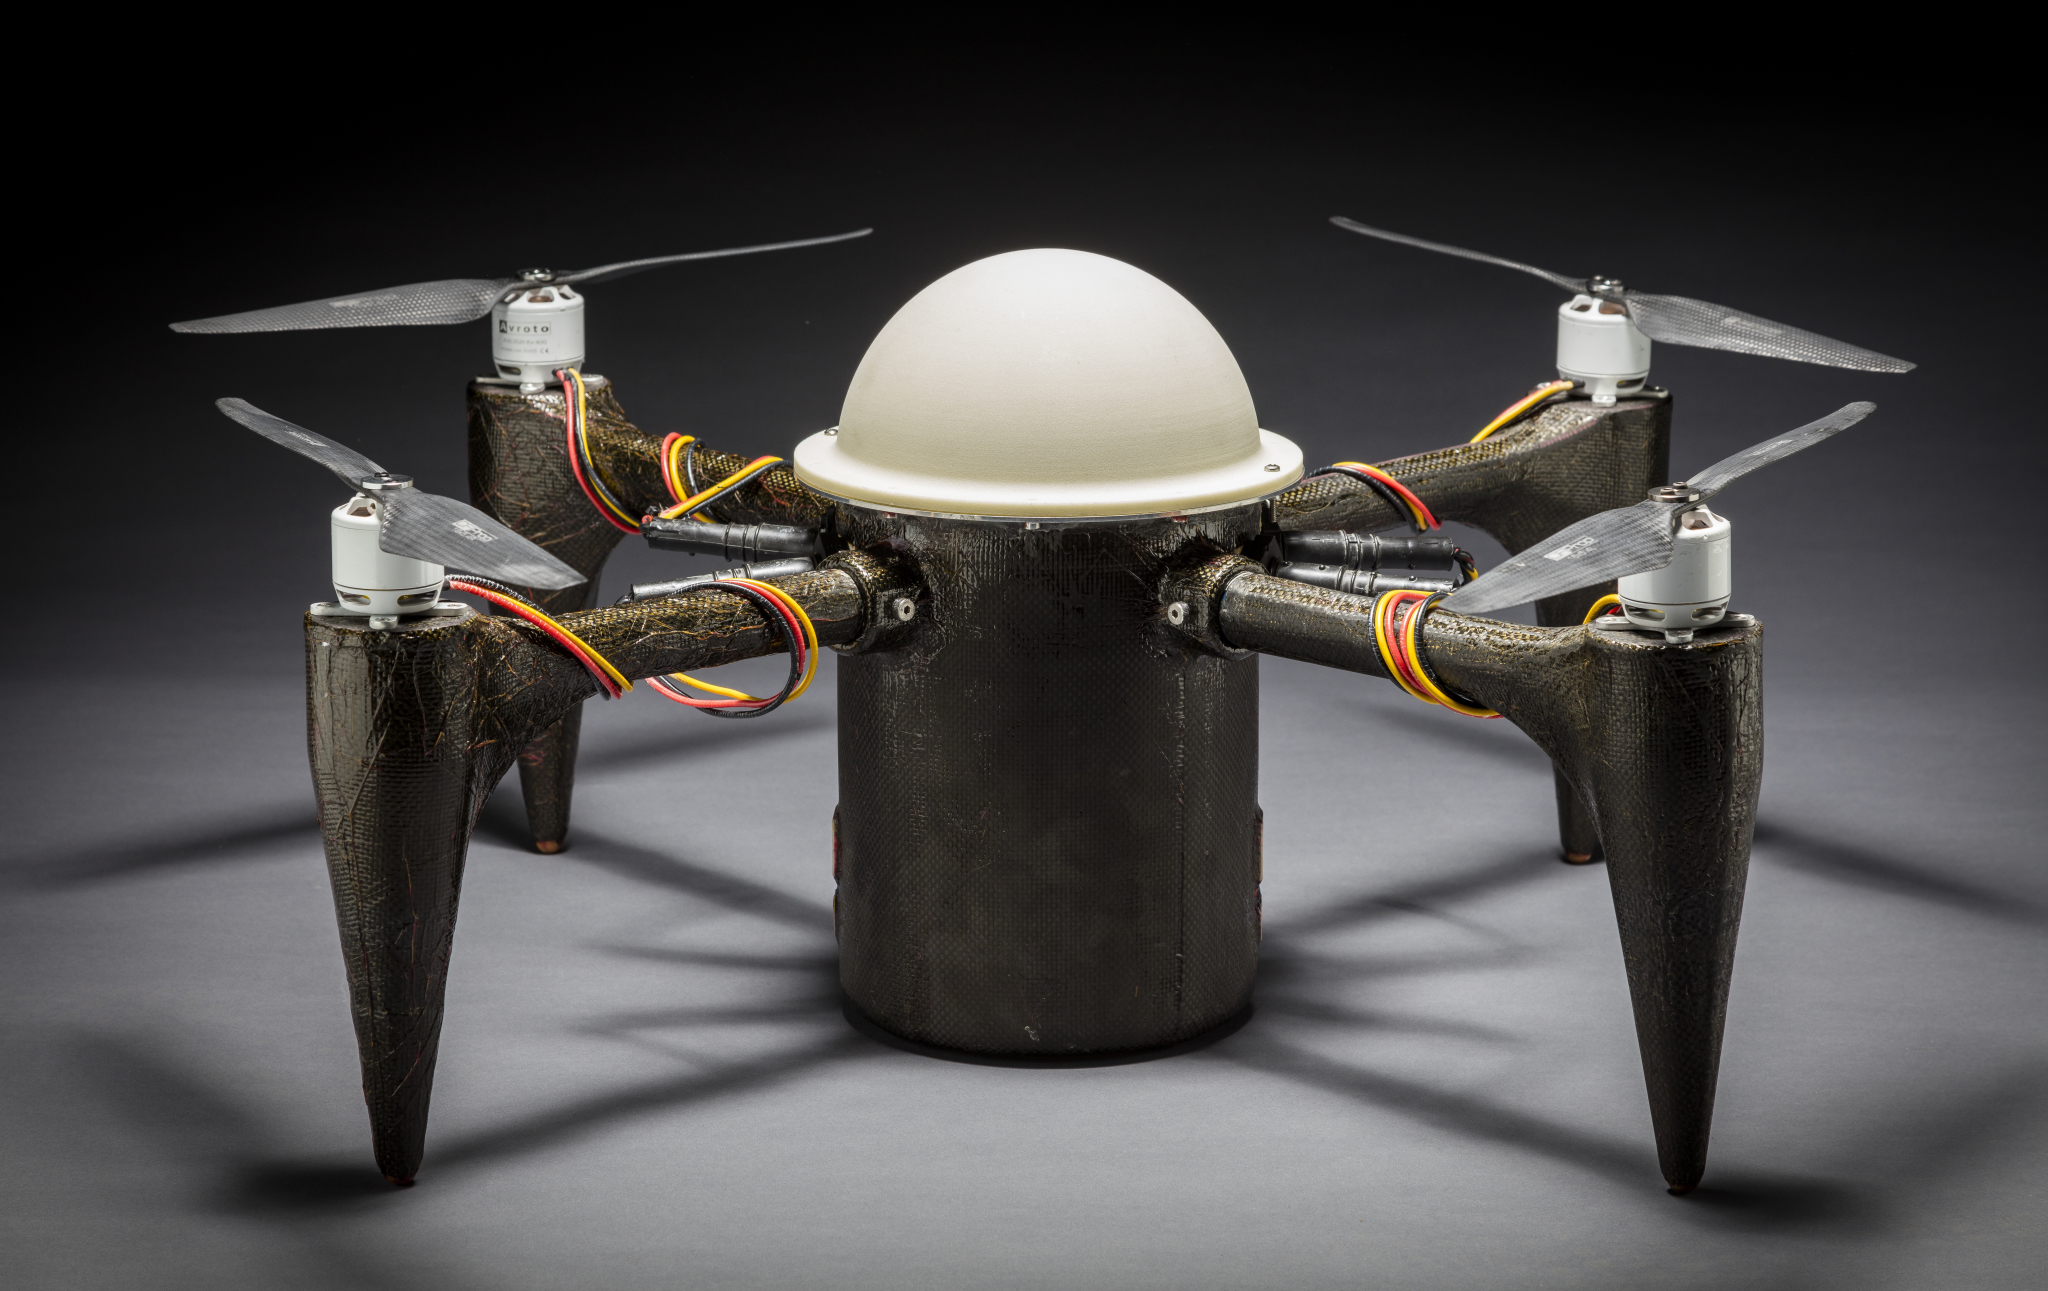 3D Printed Cracuns Drone Launches From Underwater Into The